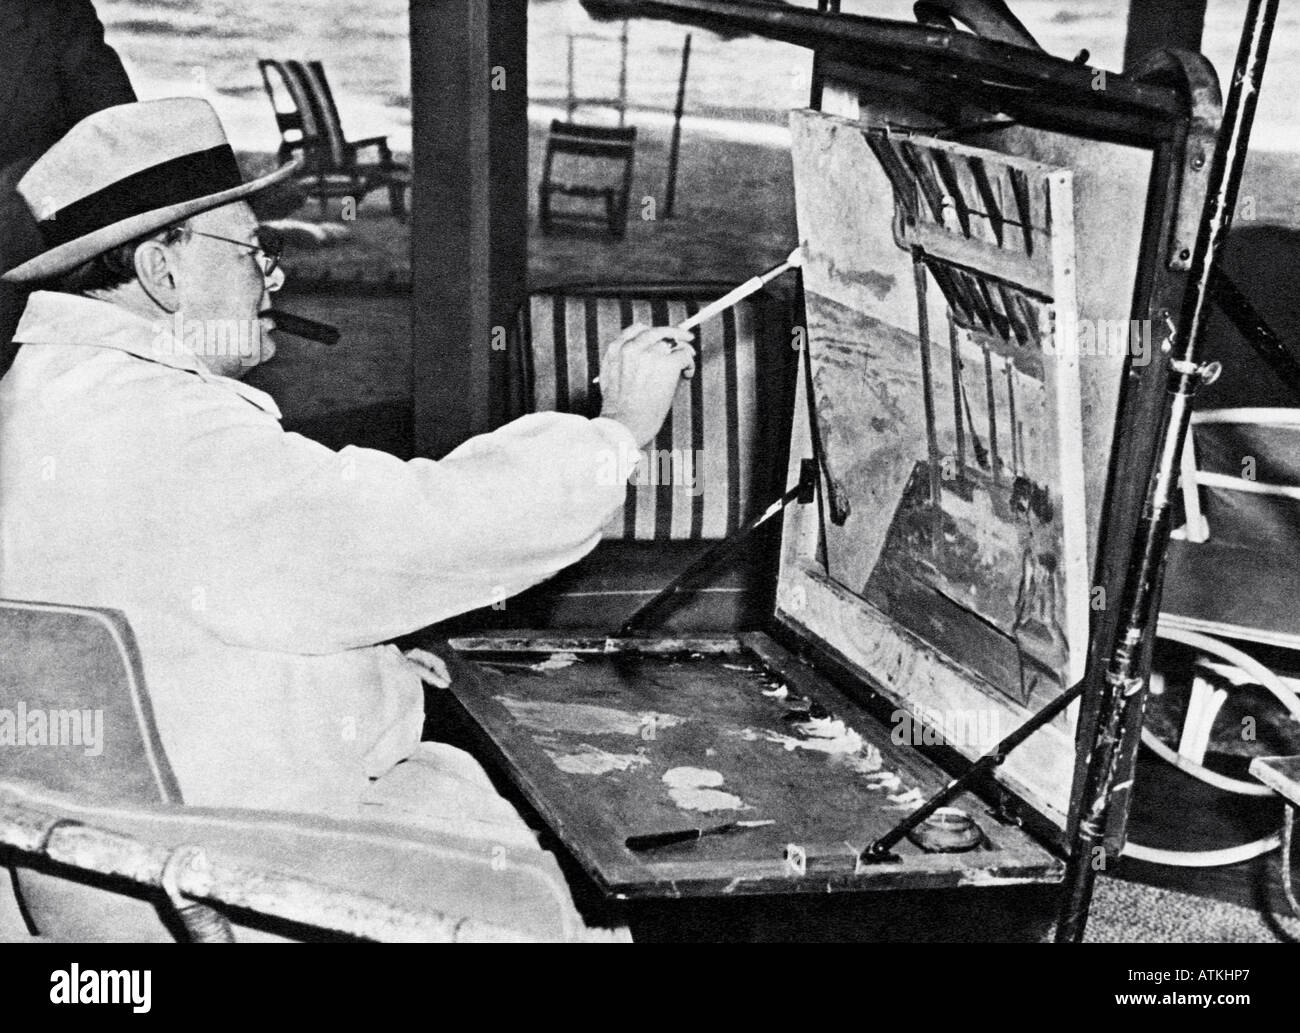 WINSTON CHURCHILL enjoying his painting hobby at the Miami Surf Club in the US in February 1946 - Stock Image